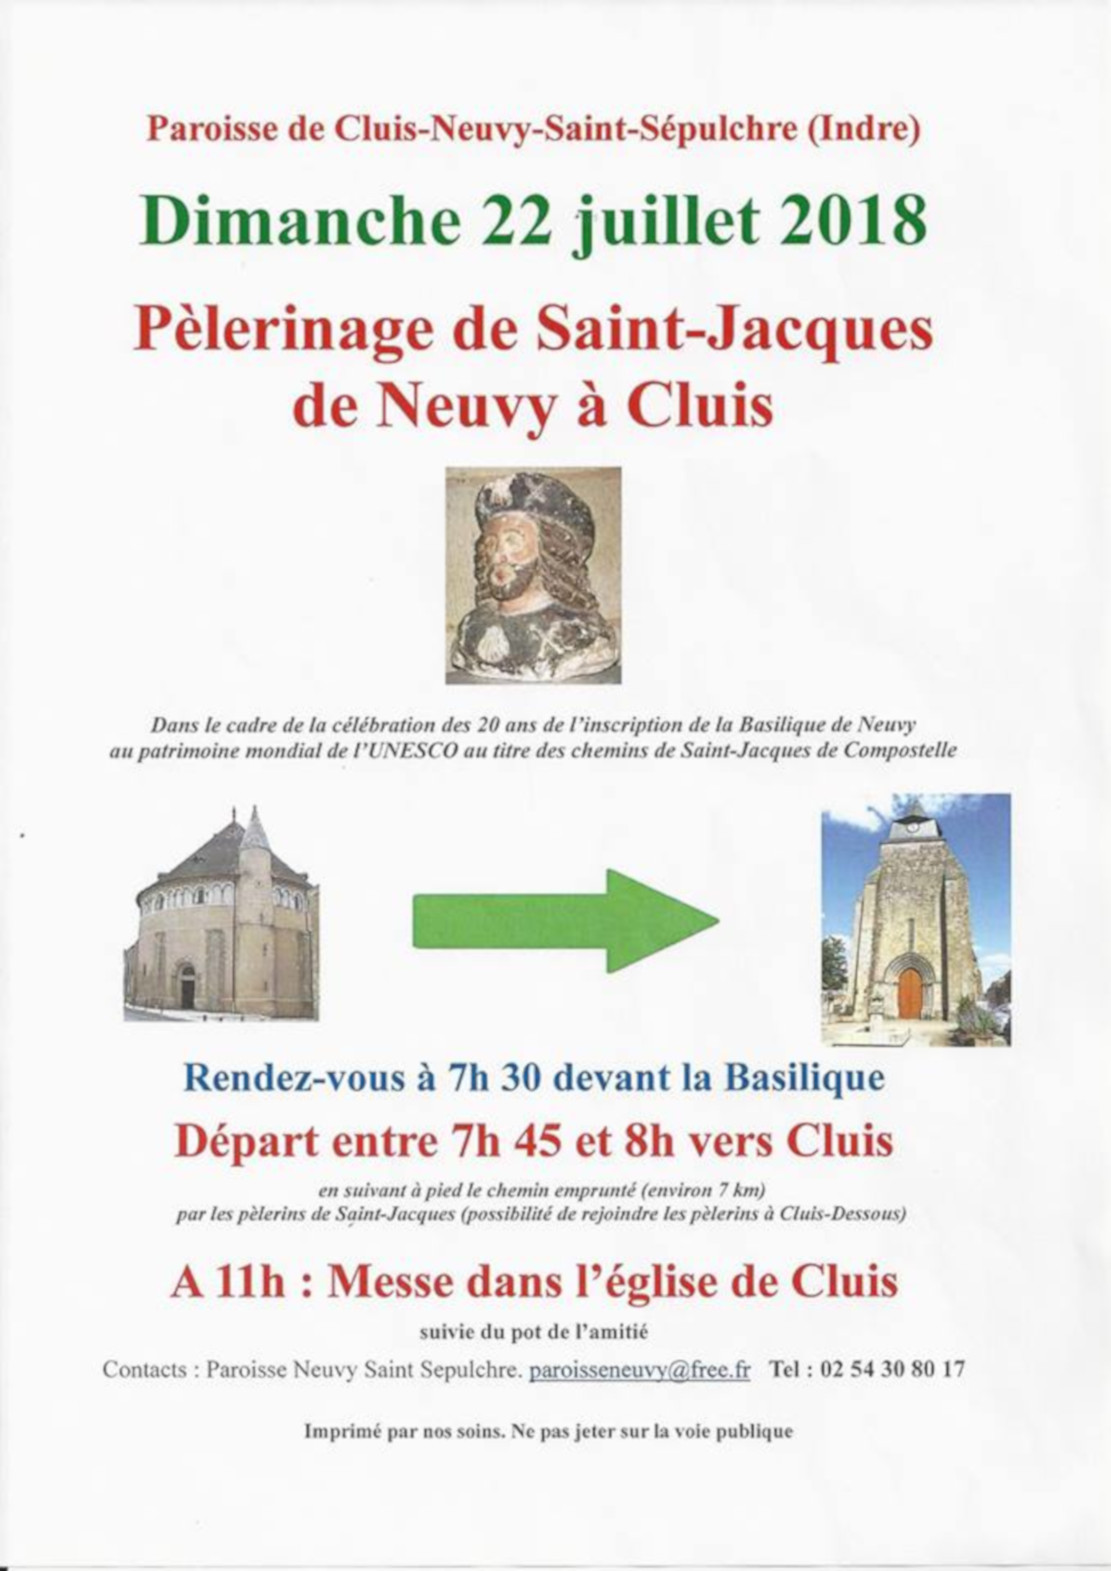 pelerinage_saint_jacques_neuvy_cluis